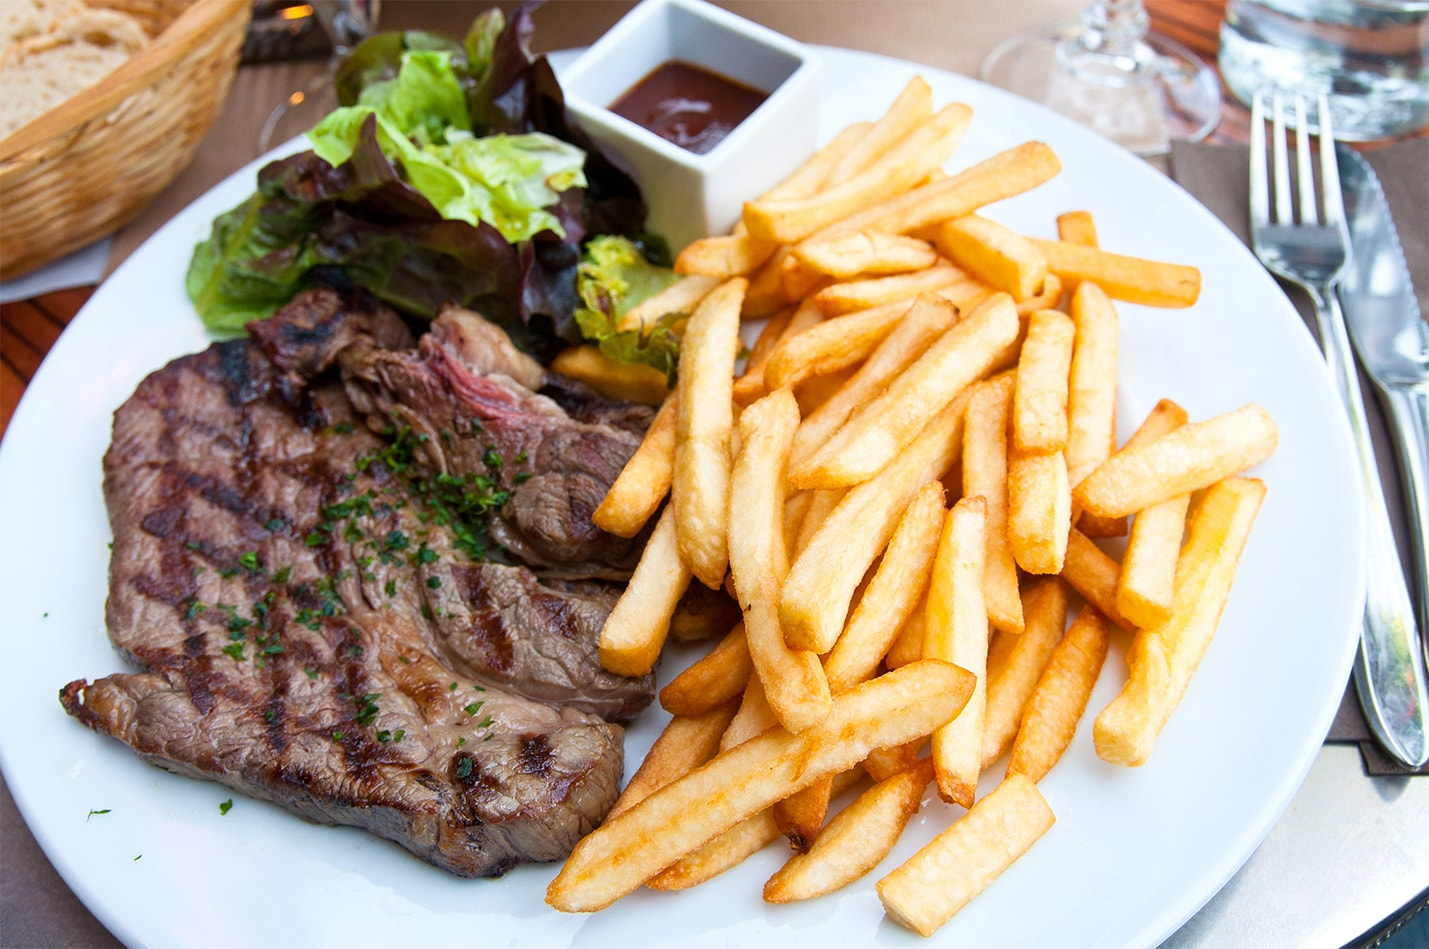 steak with fries and a side salad